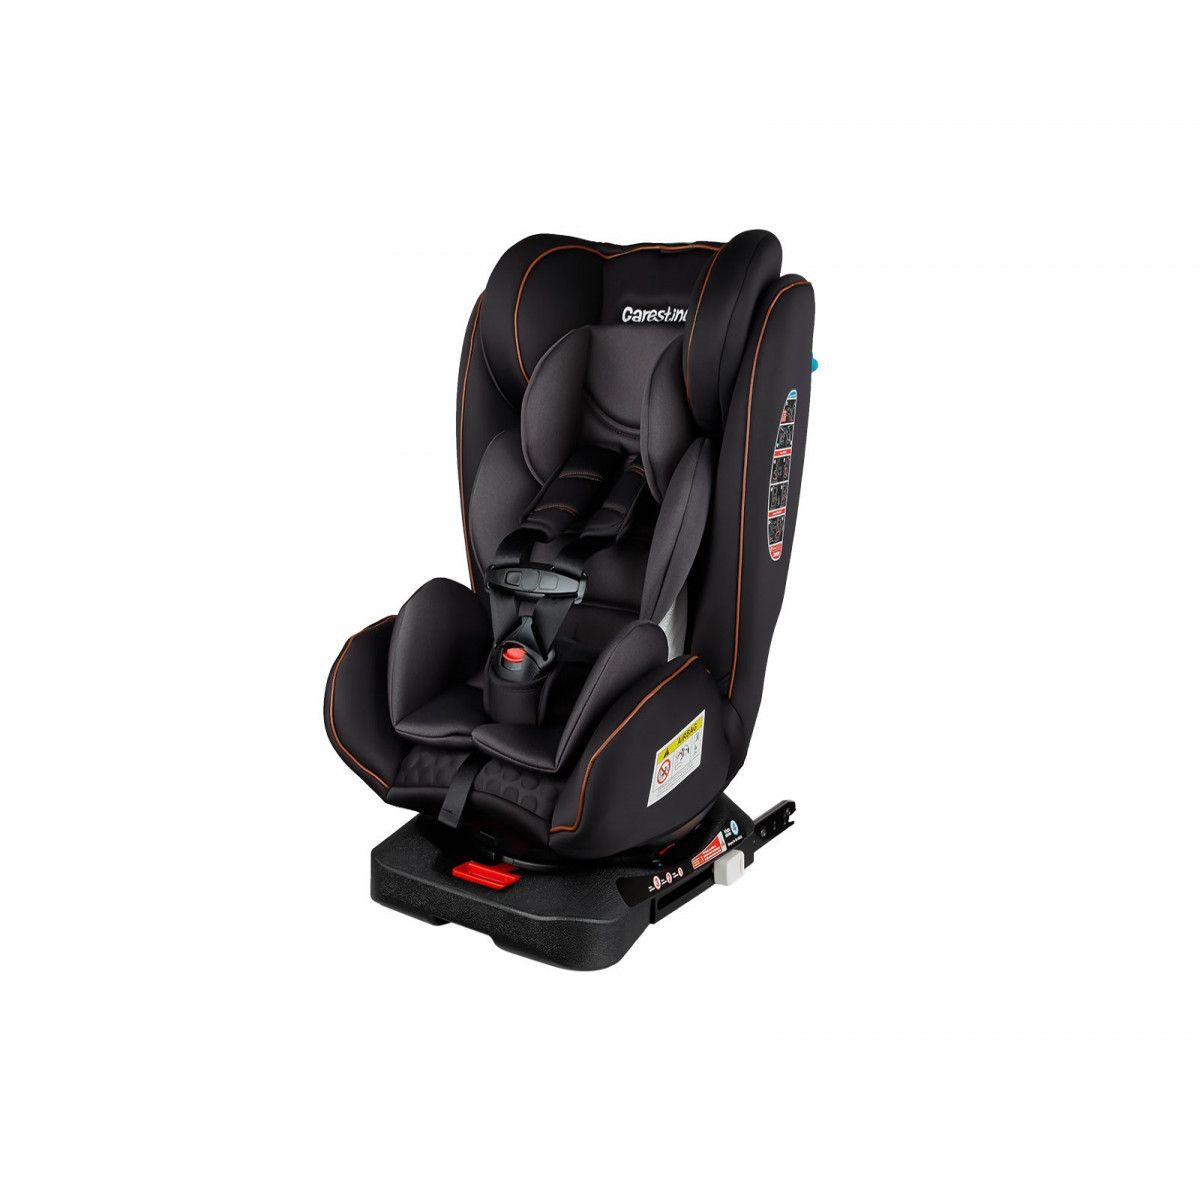 BUTACA DENVER ISOFIX Carestino negro